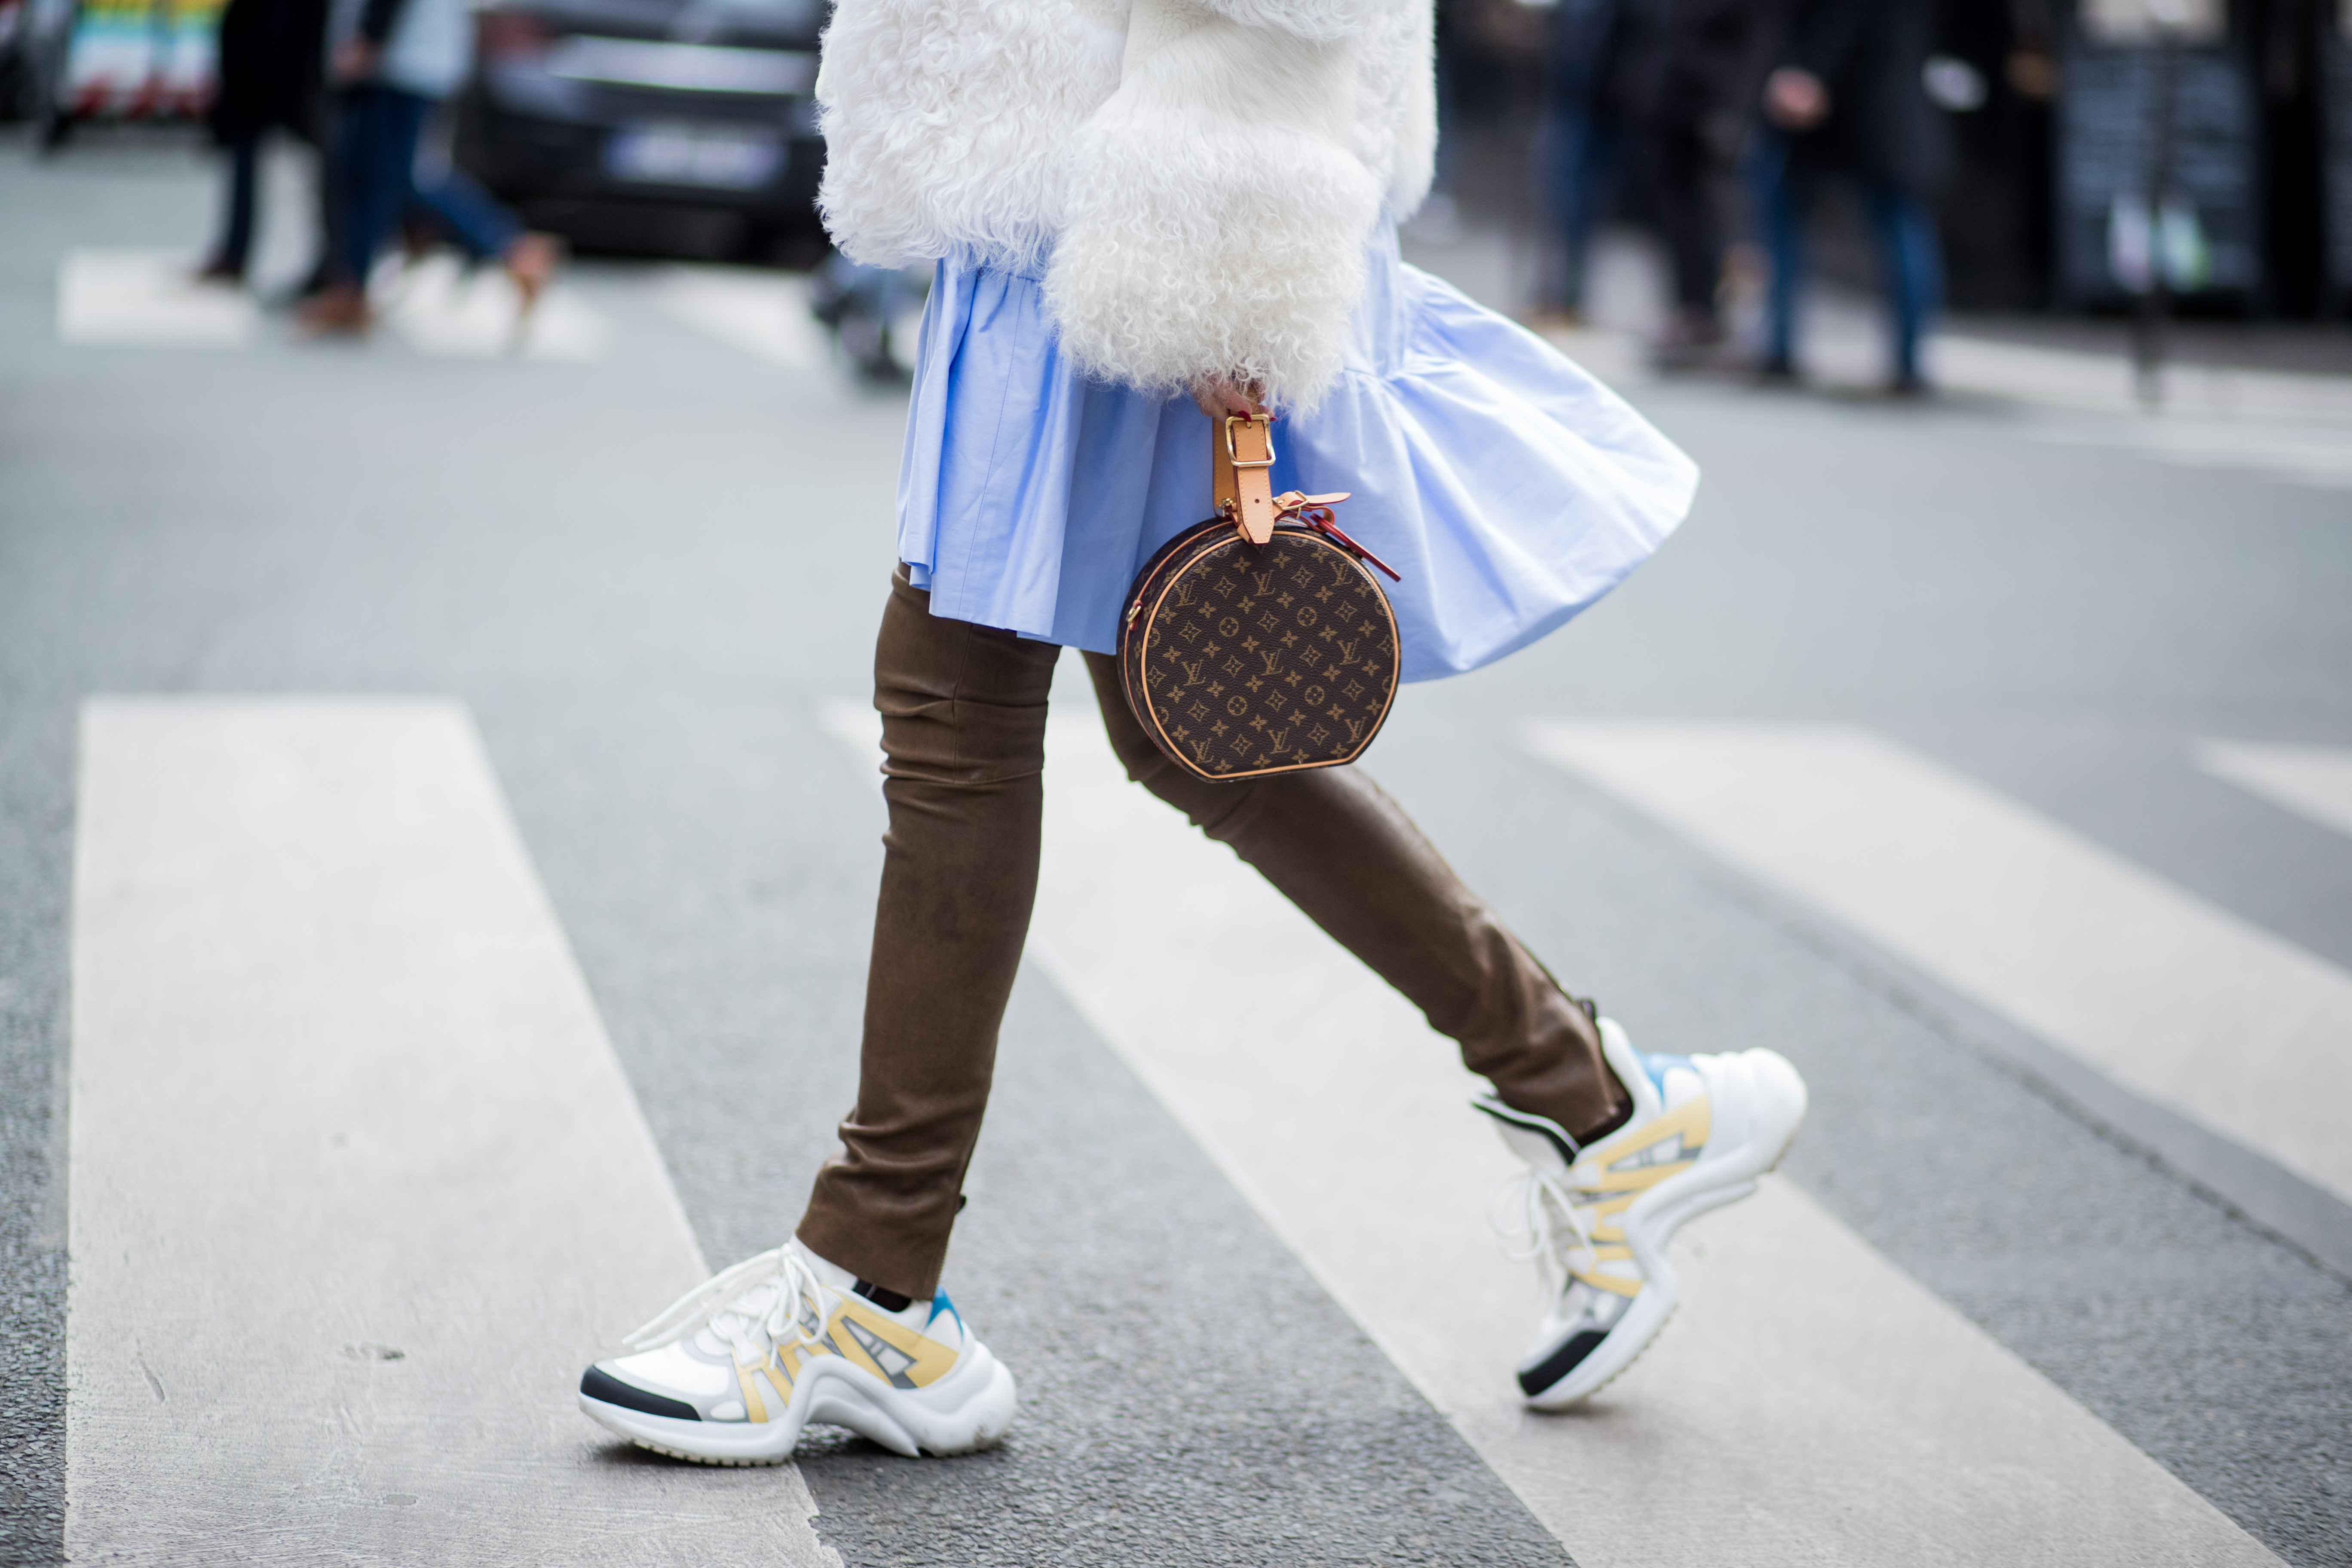 The ugly designer sneakers that have taken over fashion     Quartzy Louis Vuitton